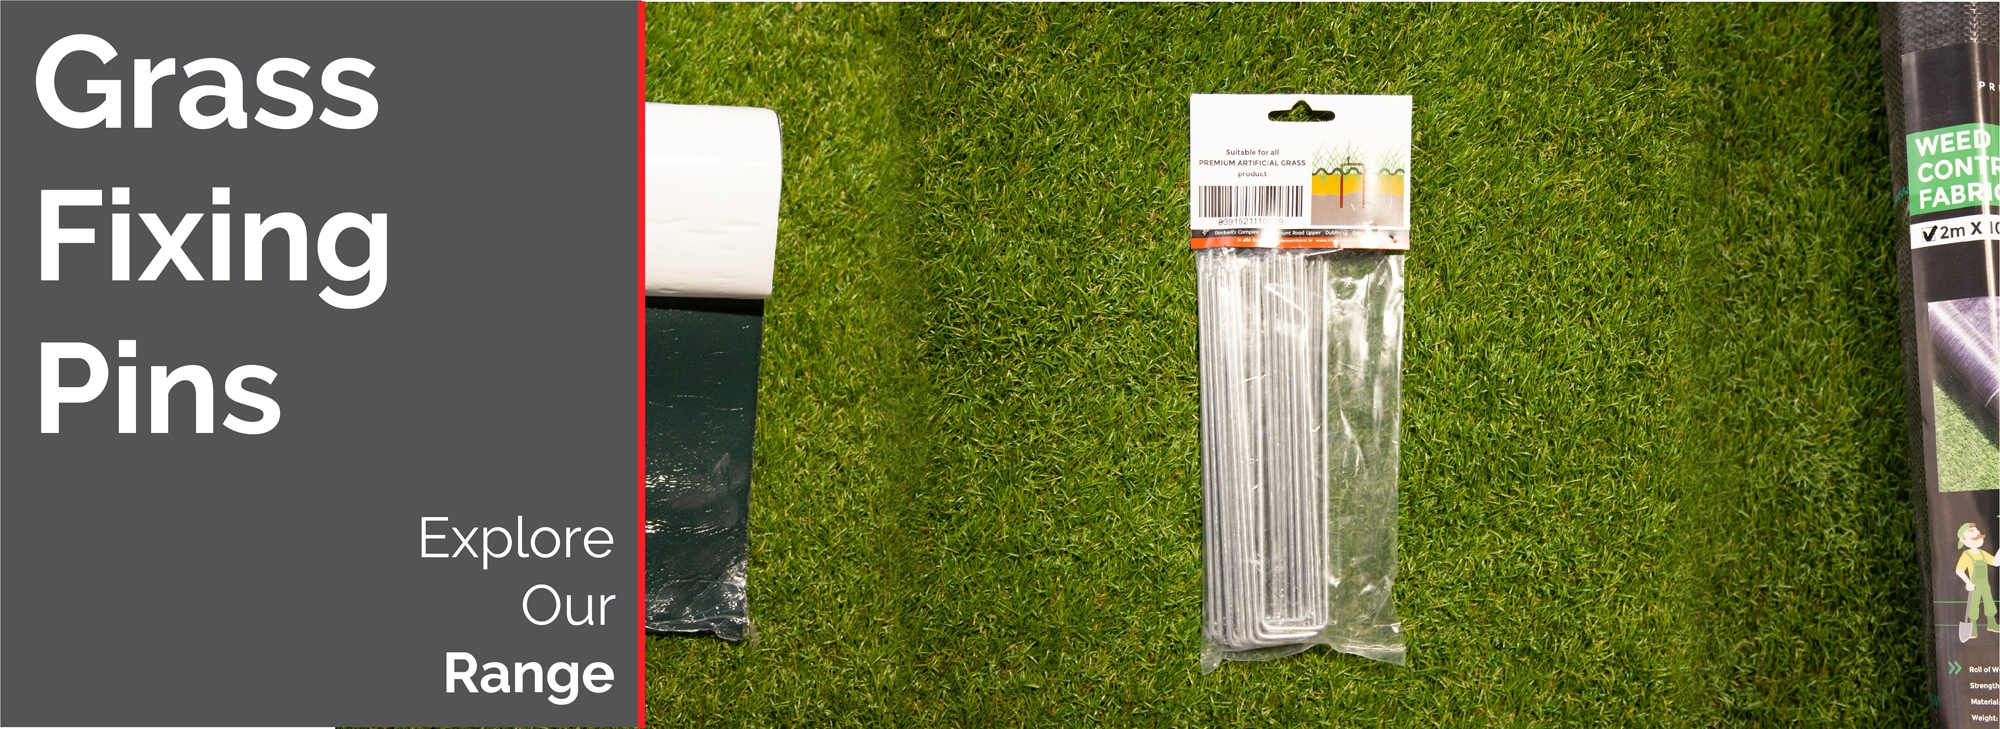 Artificial Grass Fixing Pins